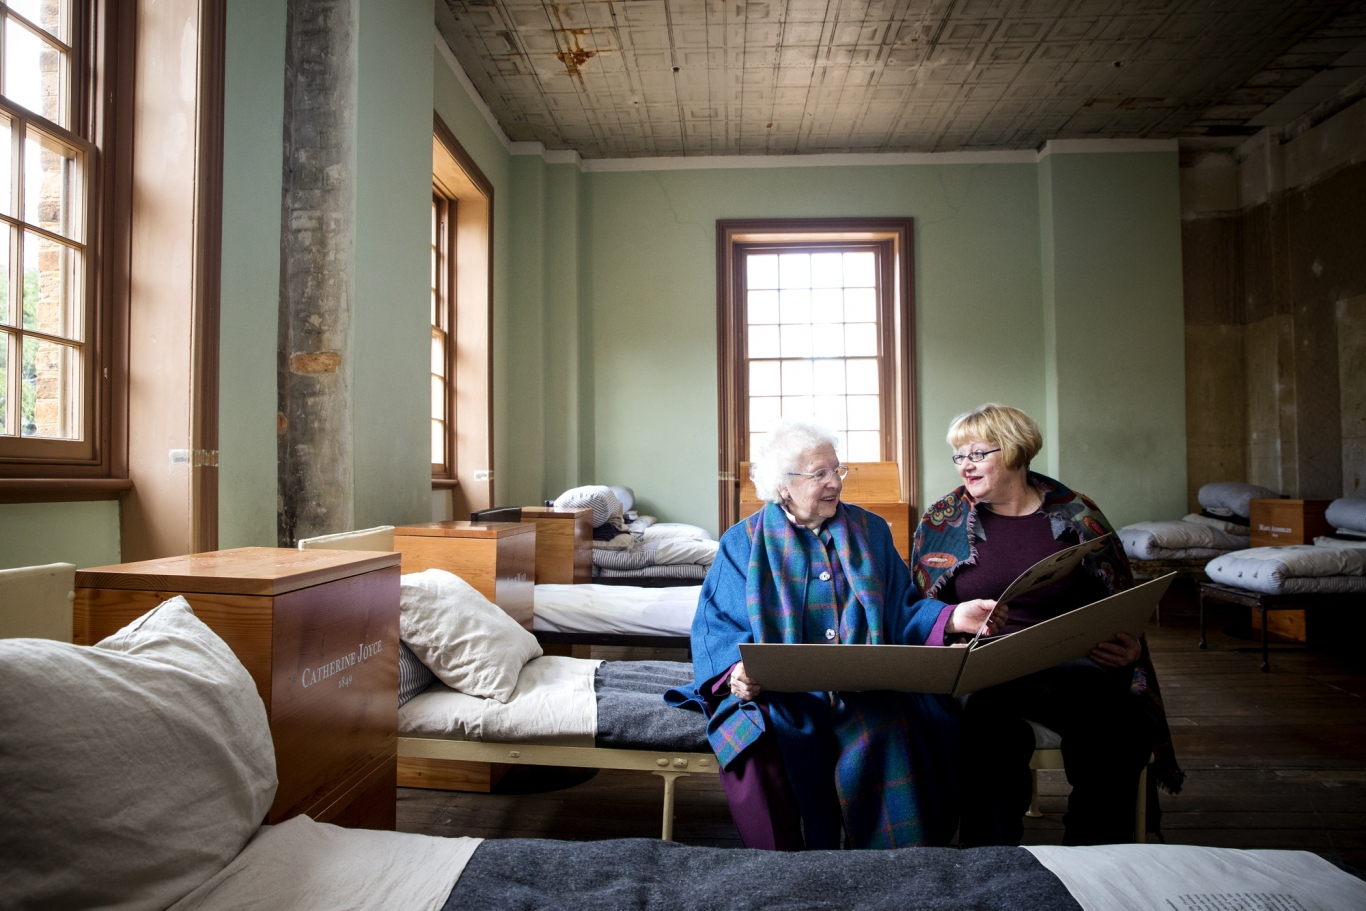 Two women seated on simple bed in dormitory style display holding large book.